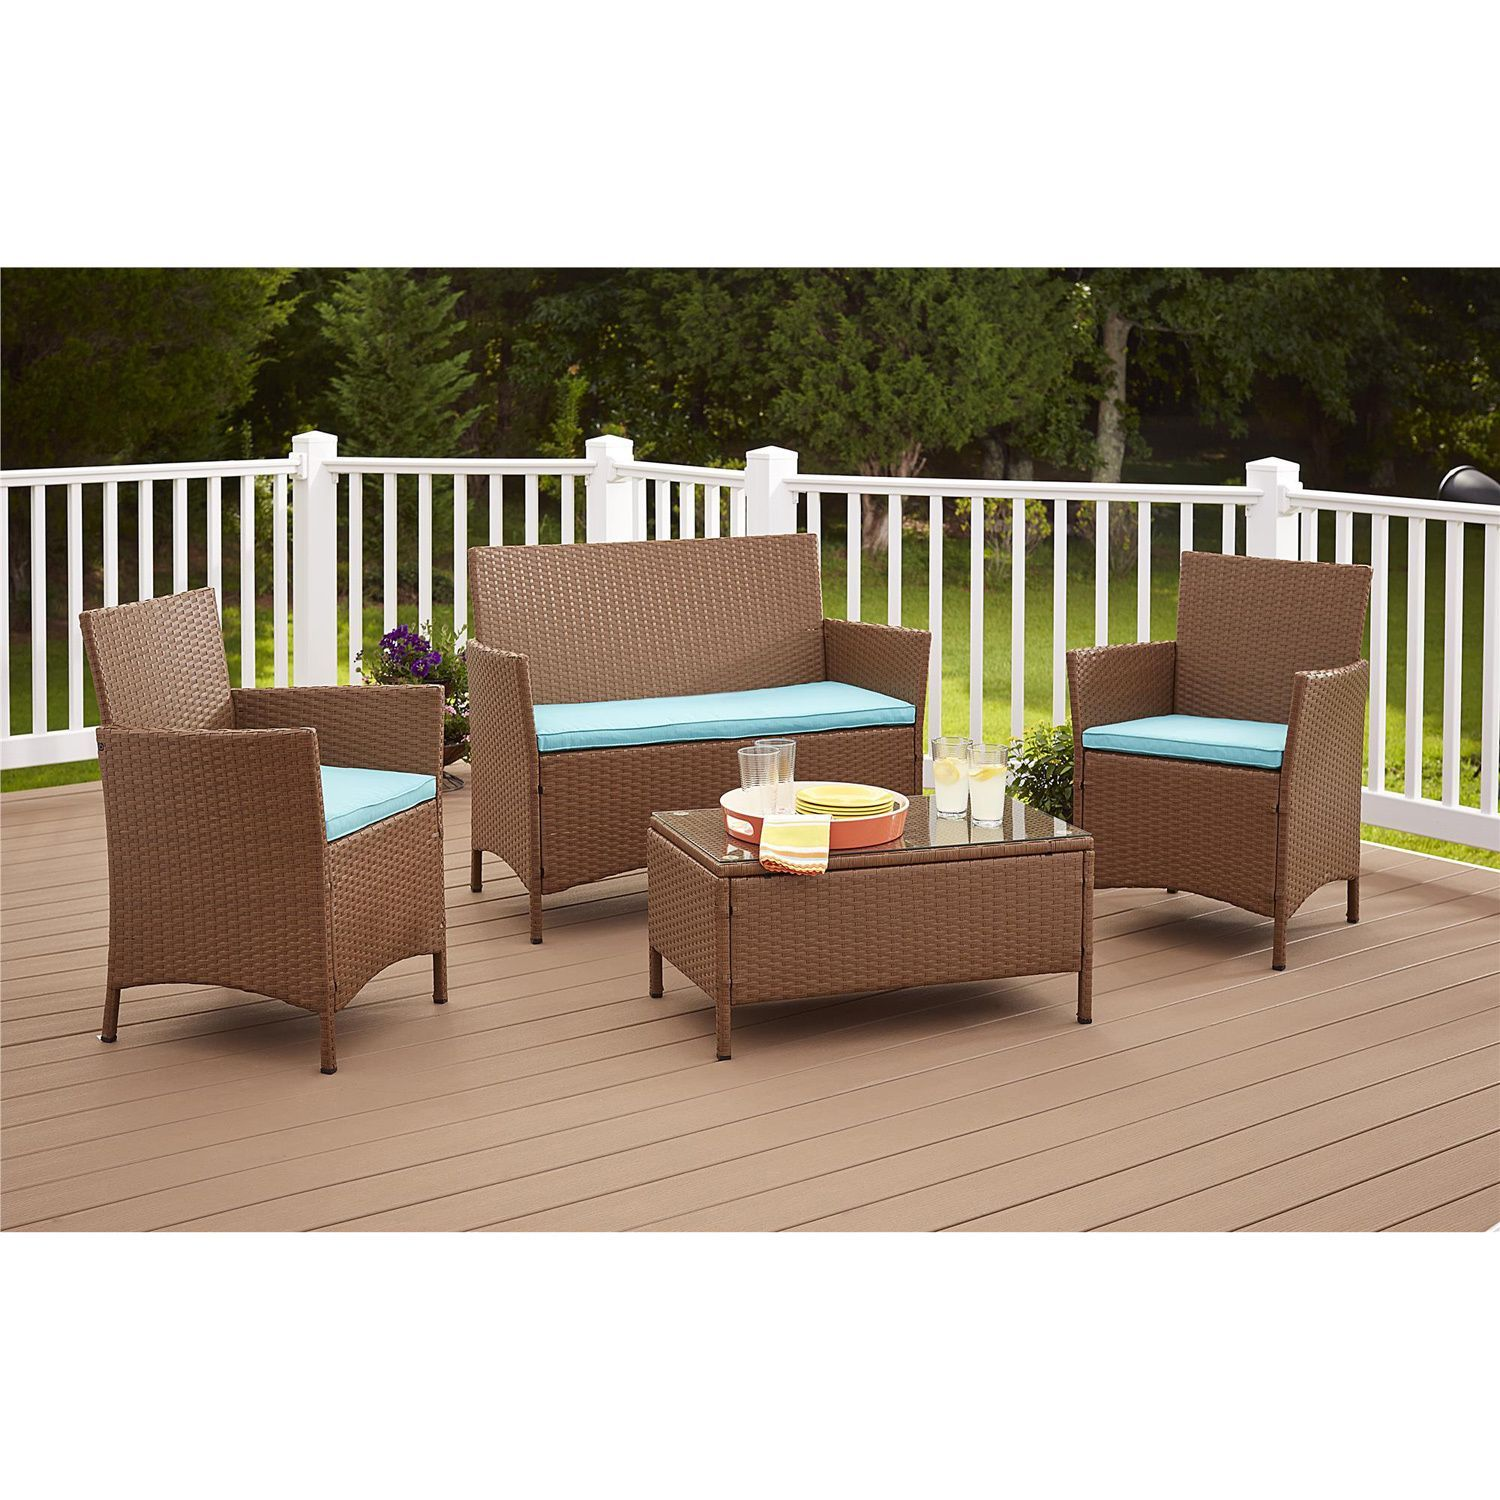 facf8756e86 Cosco Outdoor Jamaica 4-piece Resin Wicker Conversation Set ...